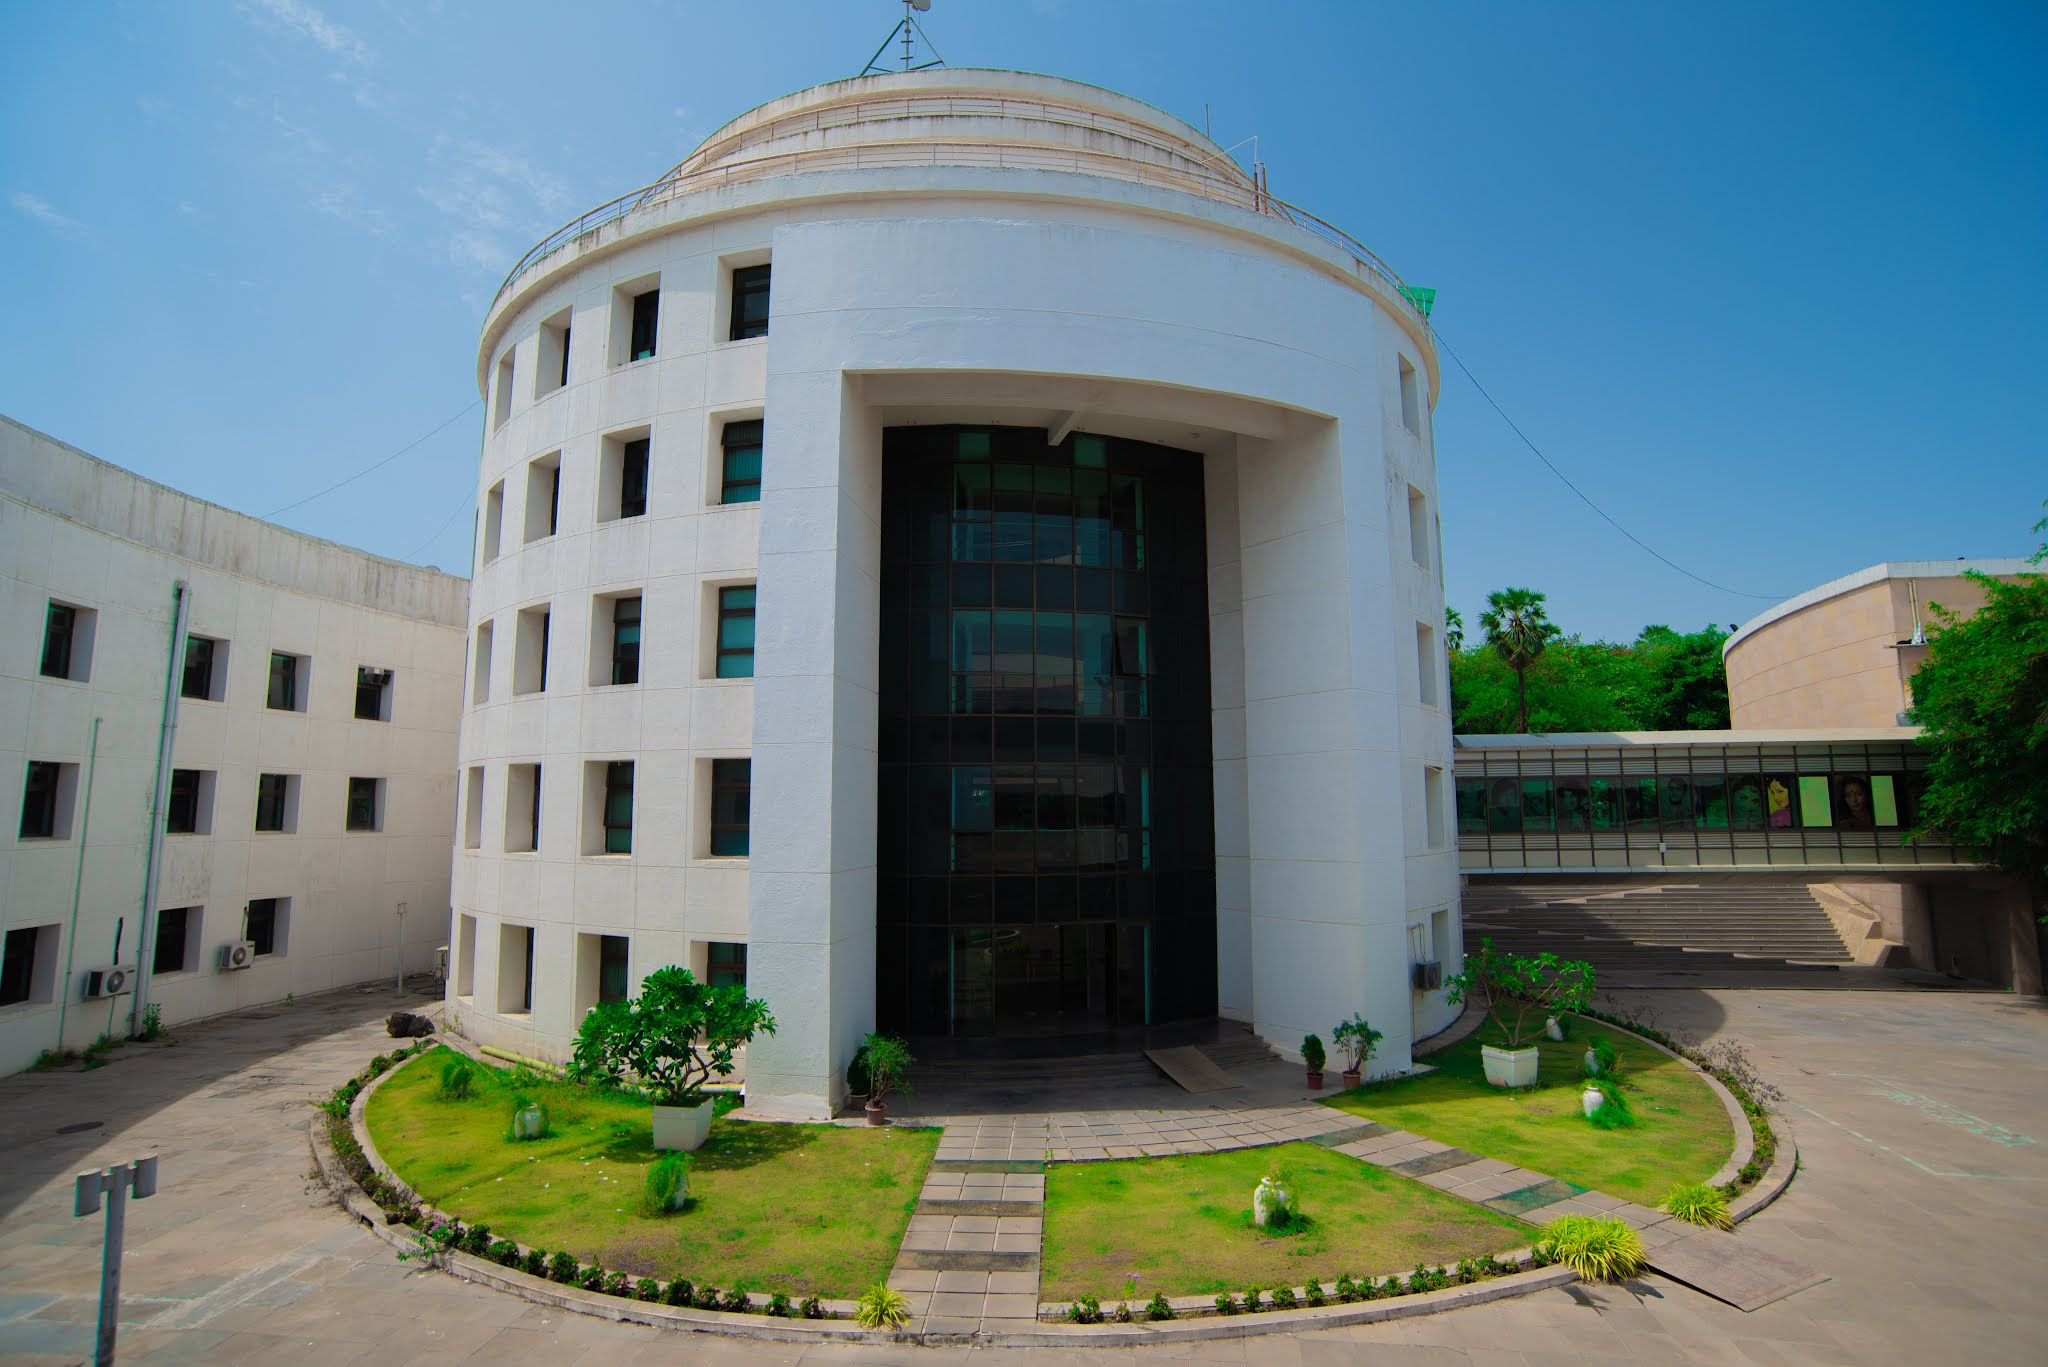 WHISTLING WOODS INTERNATIONAL ANNOUNCESDATES FOR THE AUGUST ROUND OF ENTRANCE EXAM FOR THE 2021 INTAKE